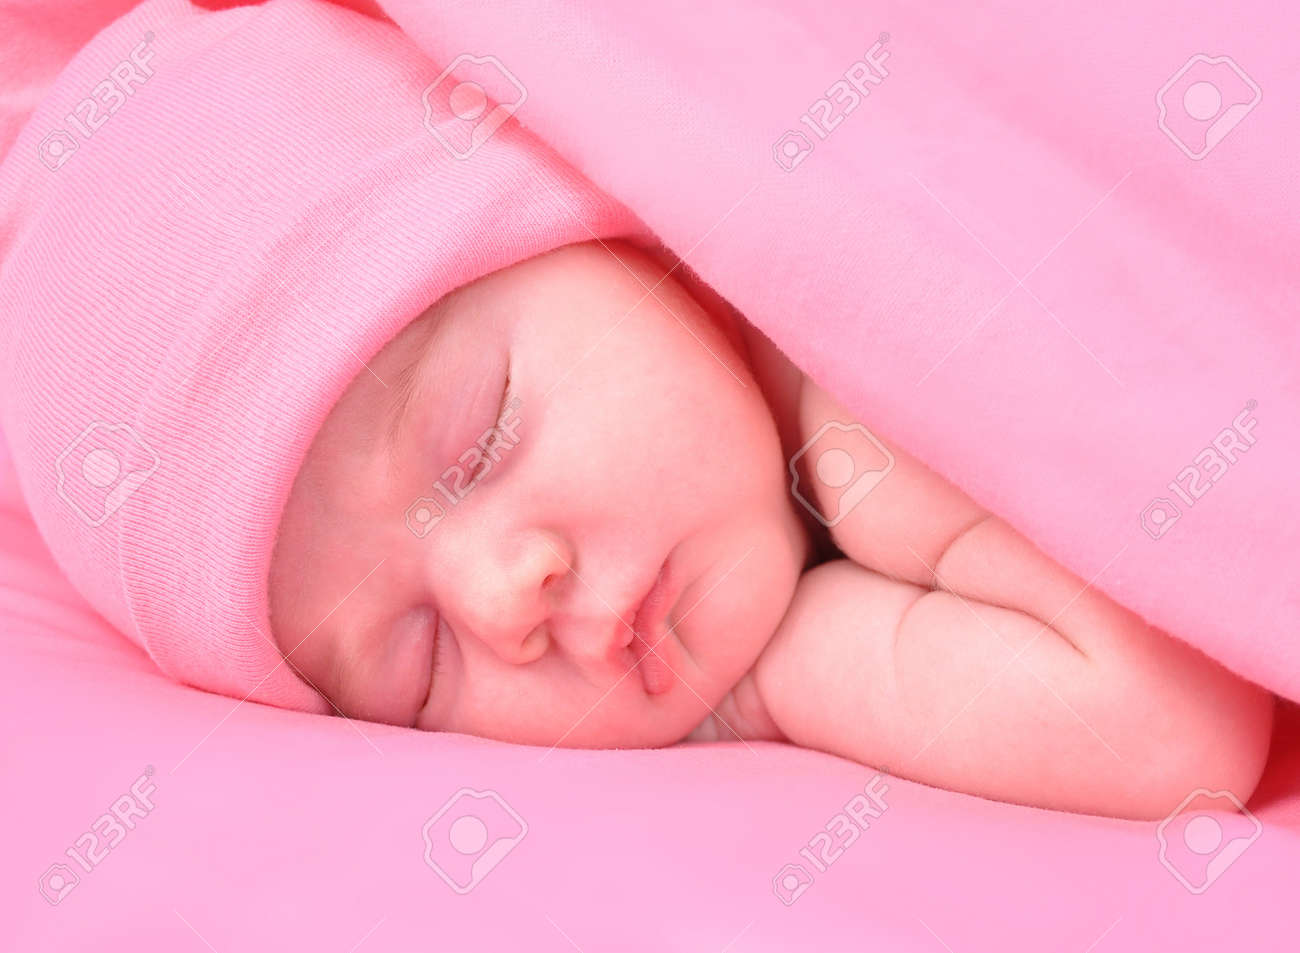 A newborn baby girl is sleeping on a pink background with a blanket  She is wearing a hat  Use it for a childhood, parenting  or innocence theme Stock Photo - 15075799